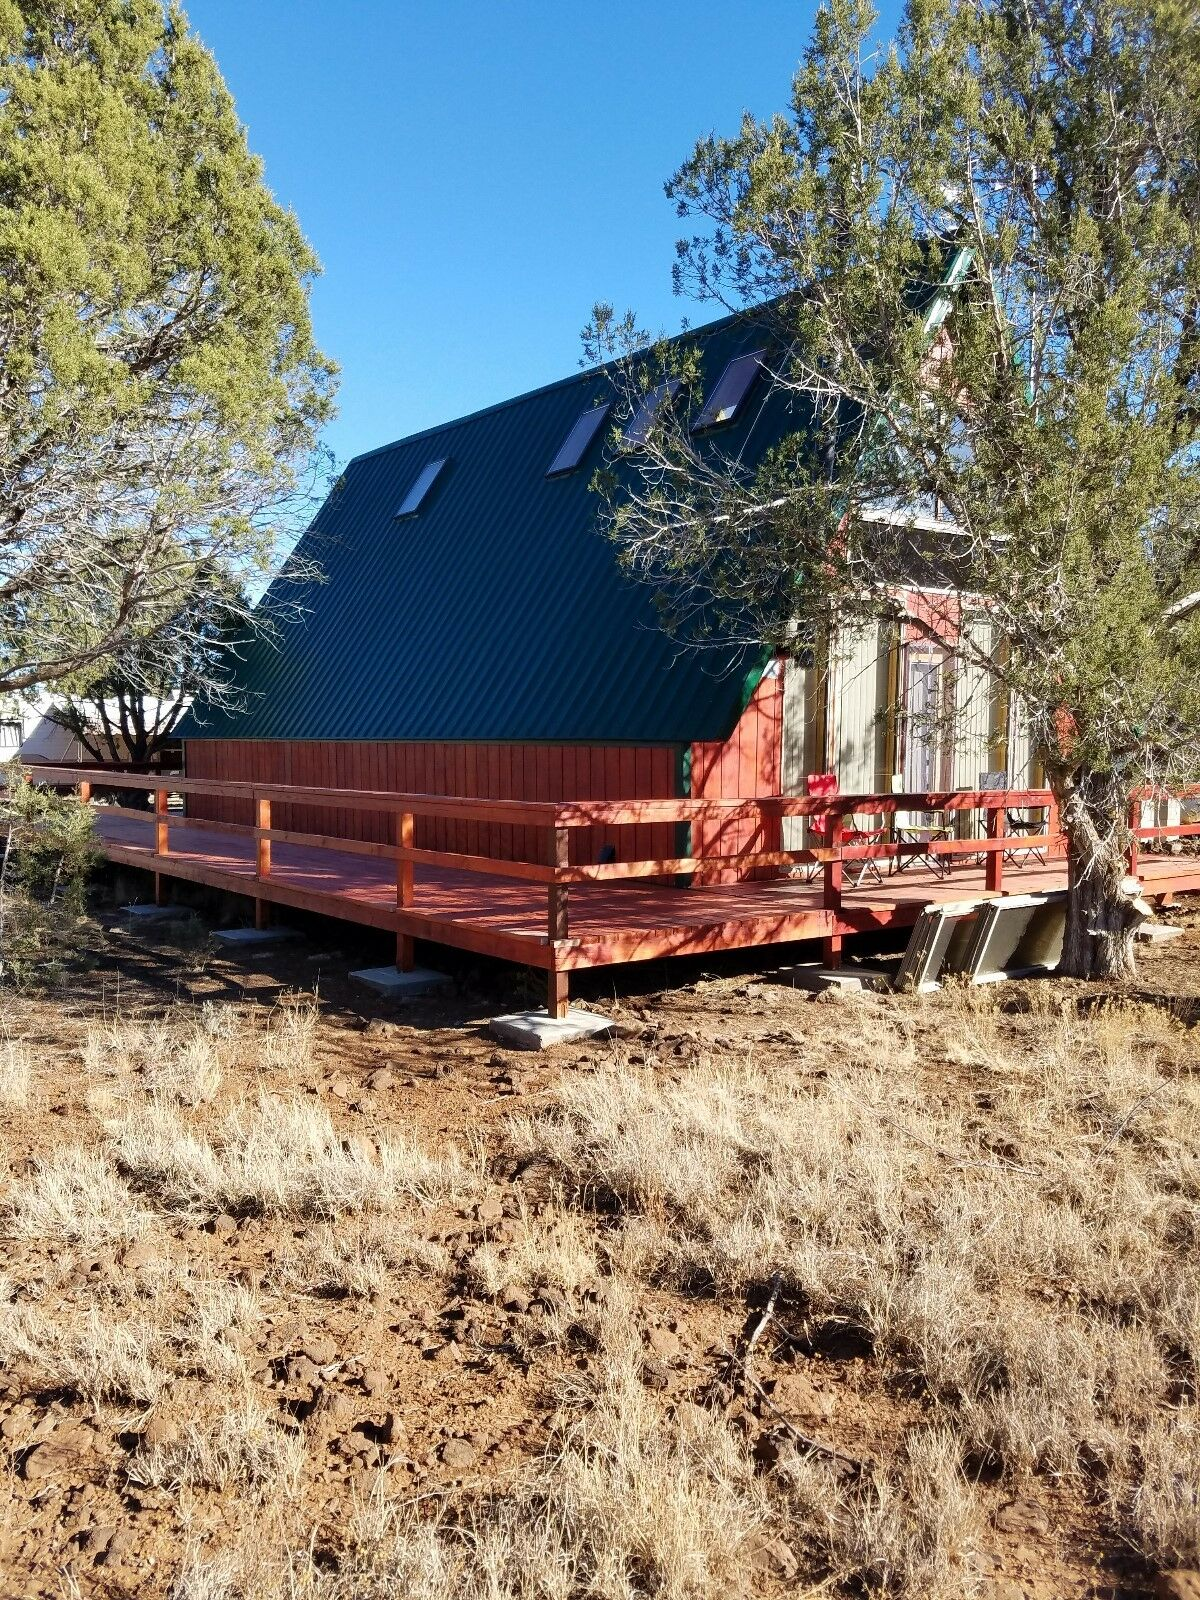 Cabin And Land For Sale Near Ash Fork, Az 2.25 Acres